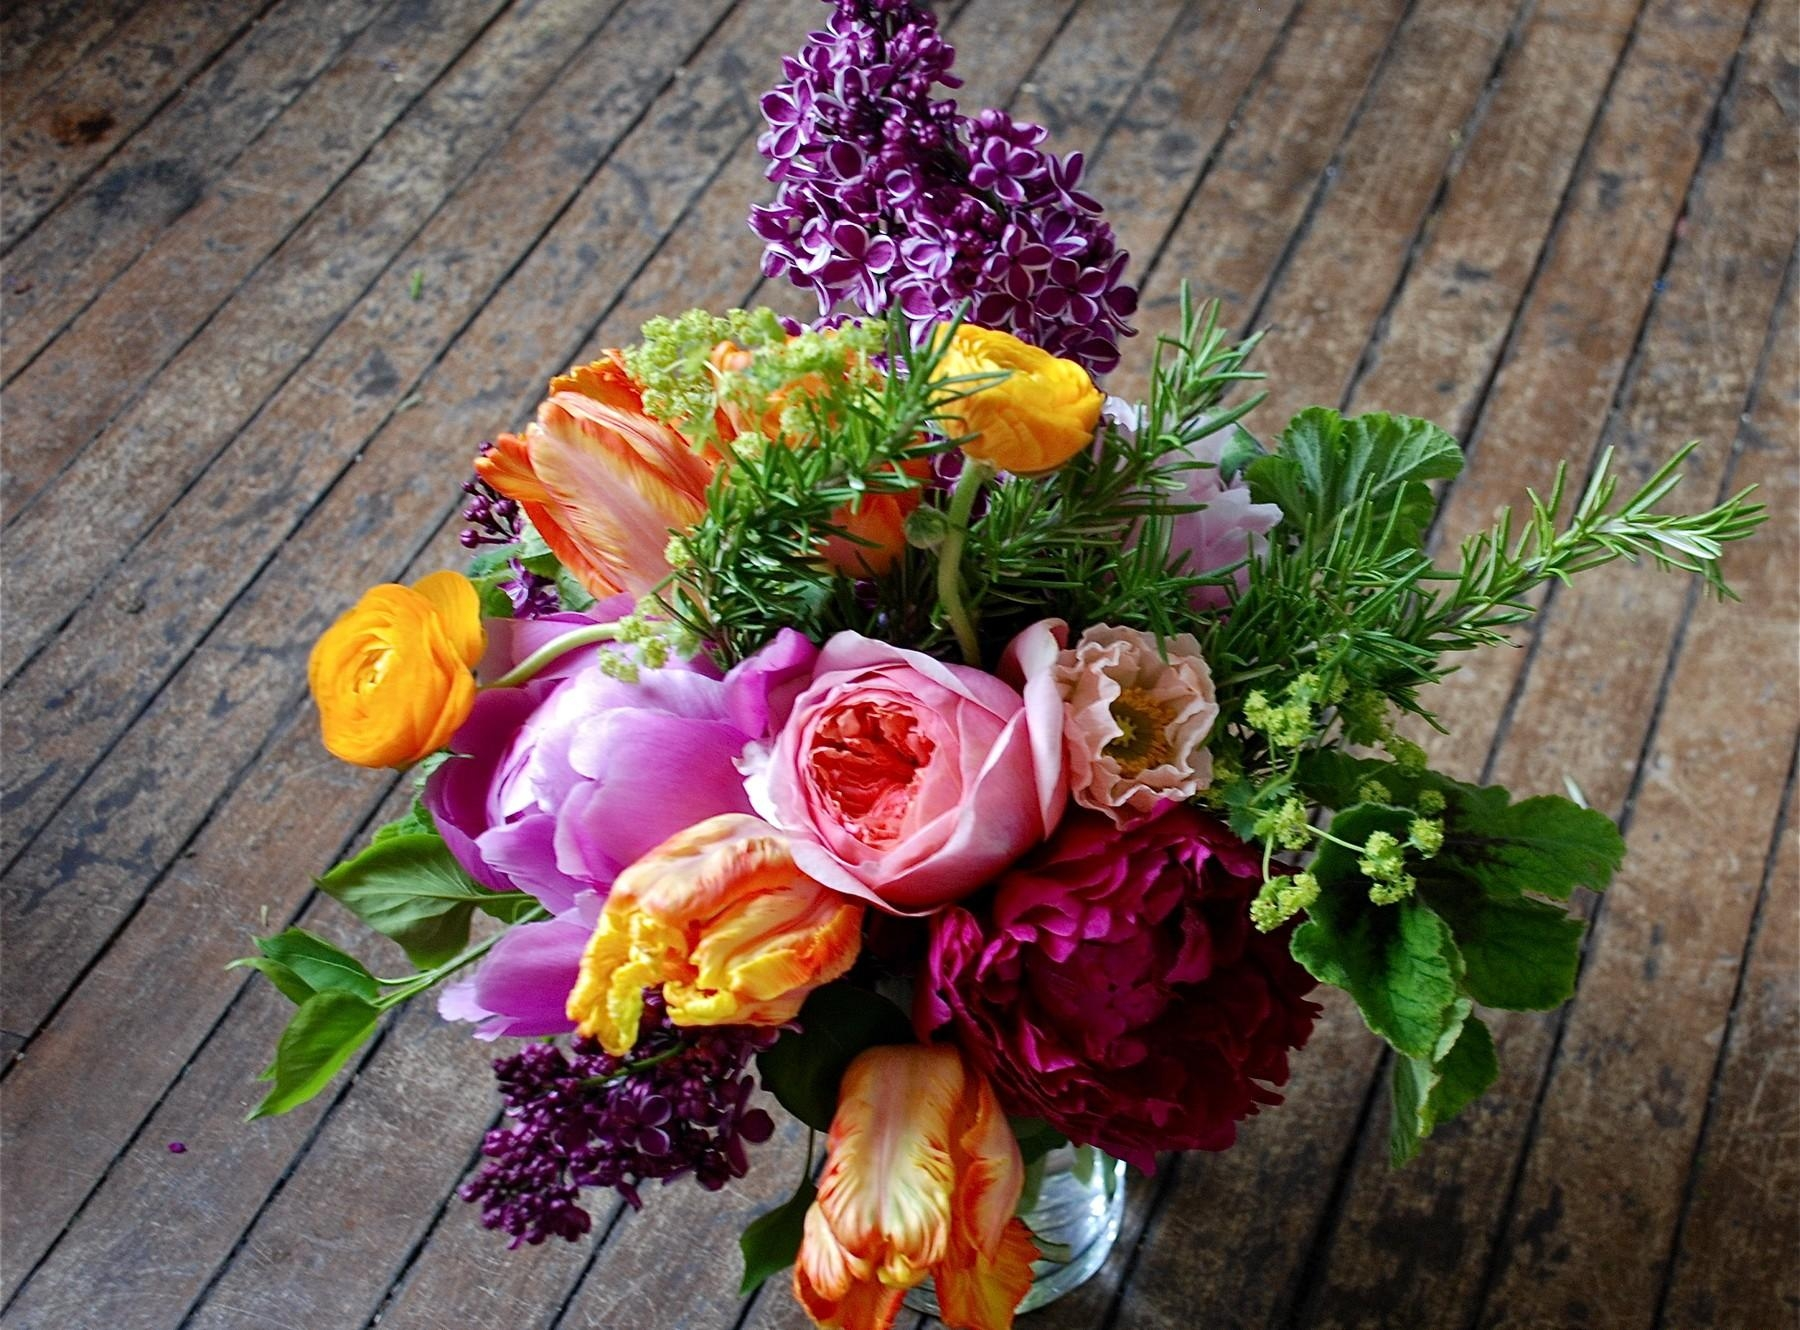 137161 download wallpaper Flowers, Lilac, Ranunculus, Ranunkulus, Bouquet, Vase, Floor, Tulips screensavers and pictures for free